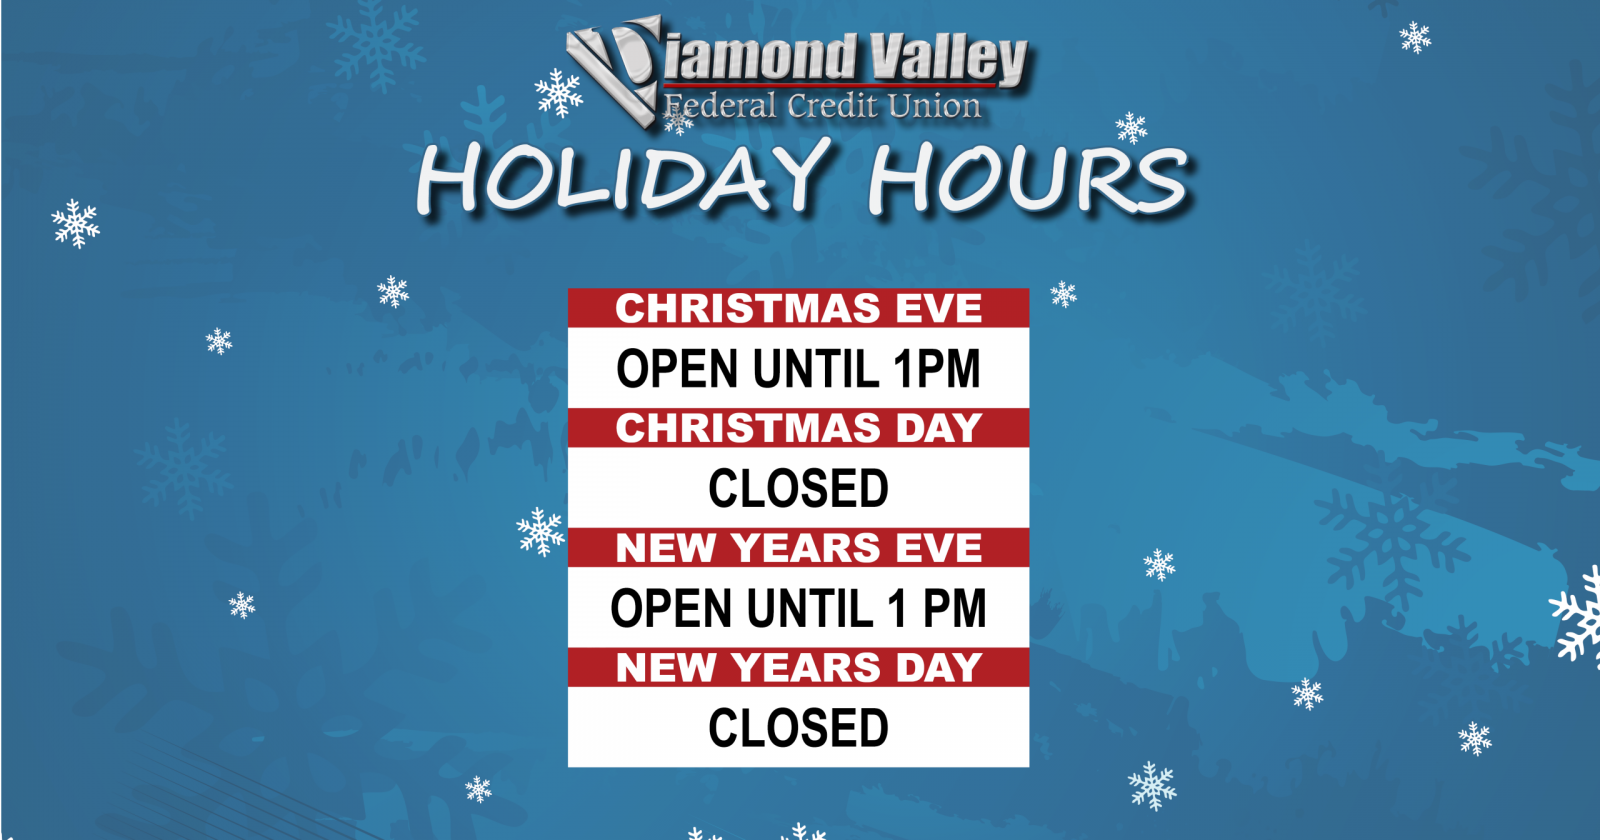 DVFCU Holiday Hours - Christmas & New Years